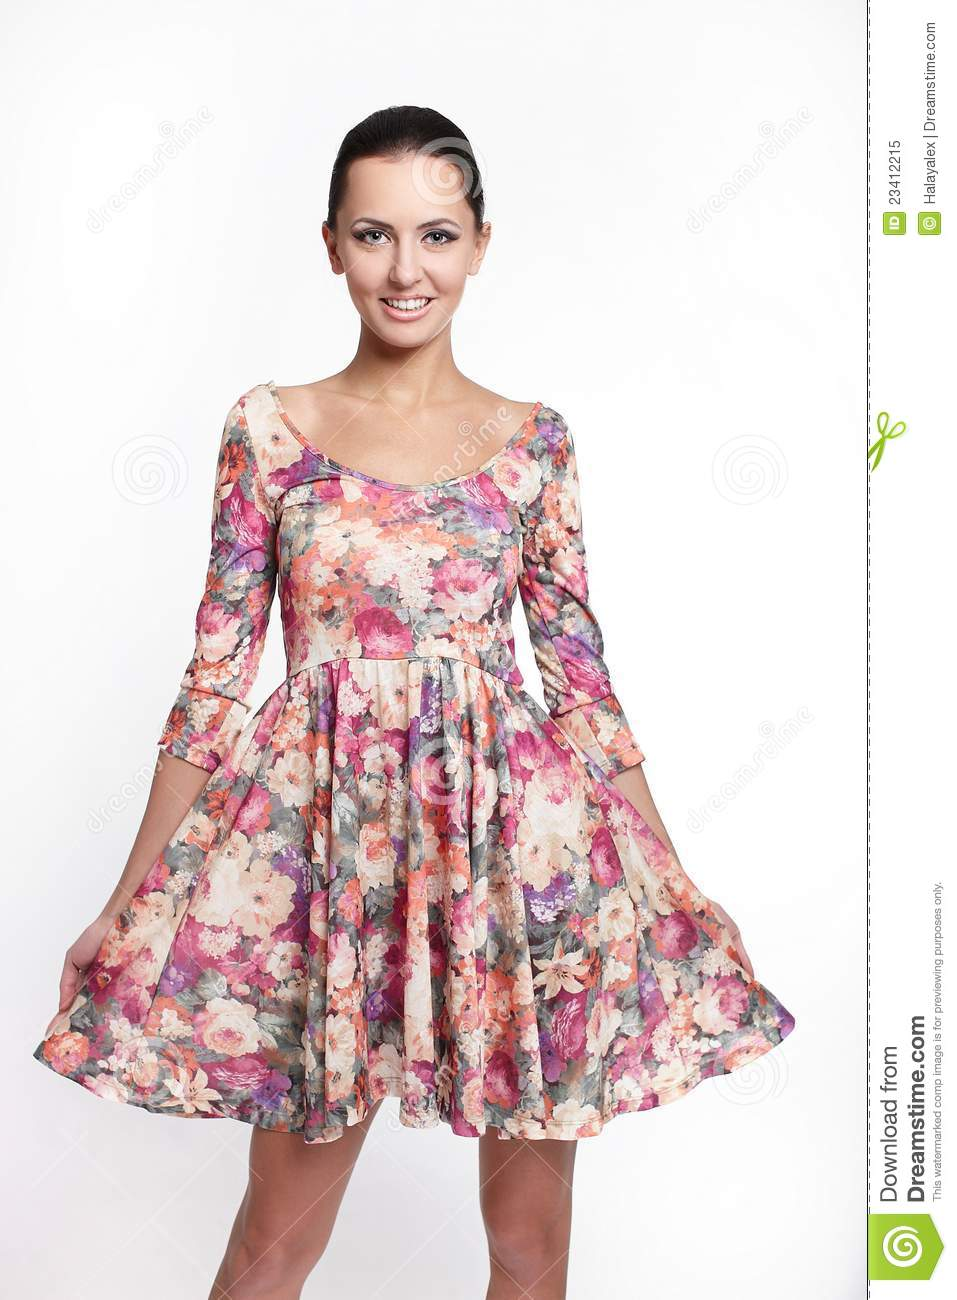 Beautiful Smiling Woman In Colorful Summer Dress Stock ...